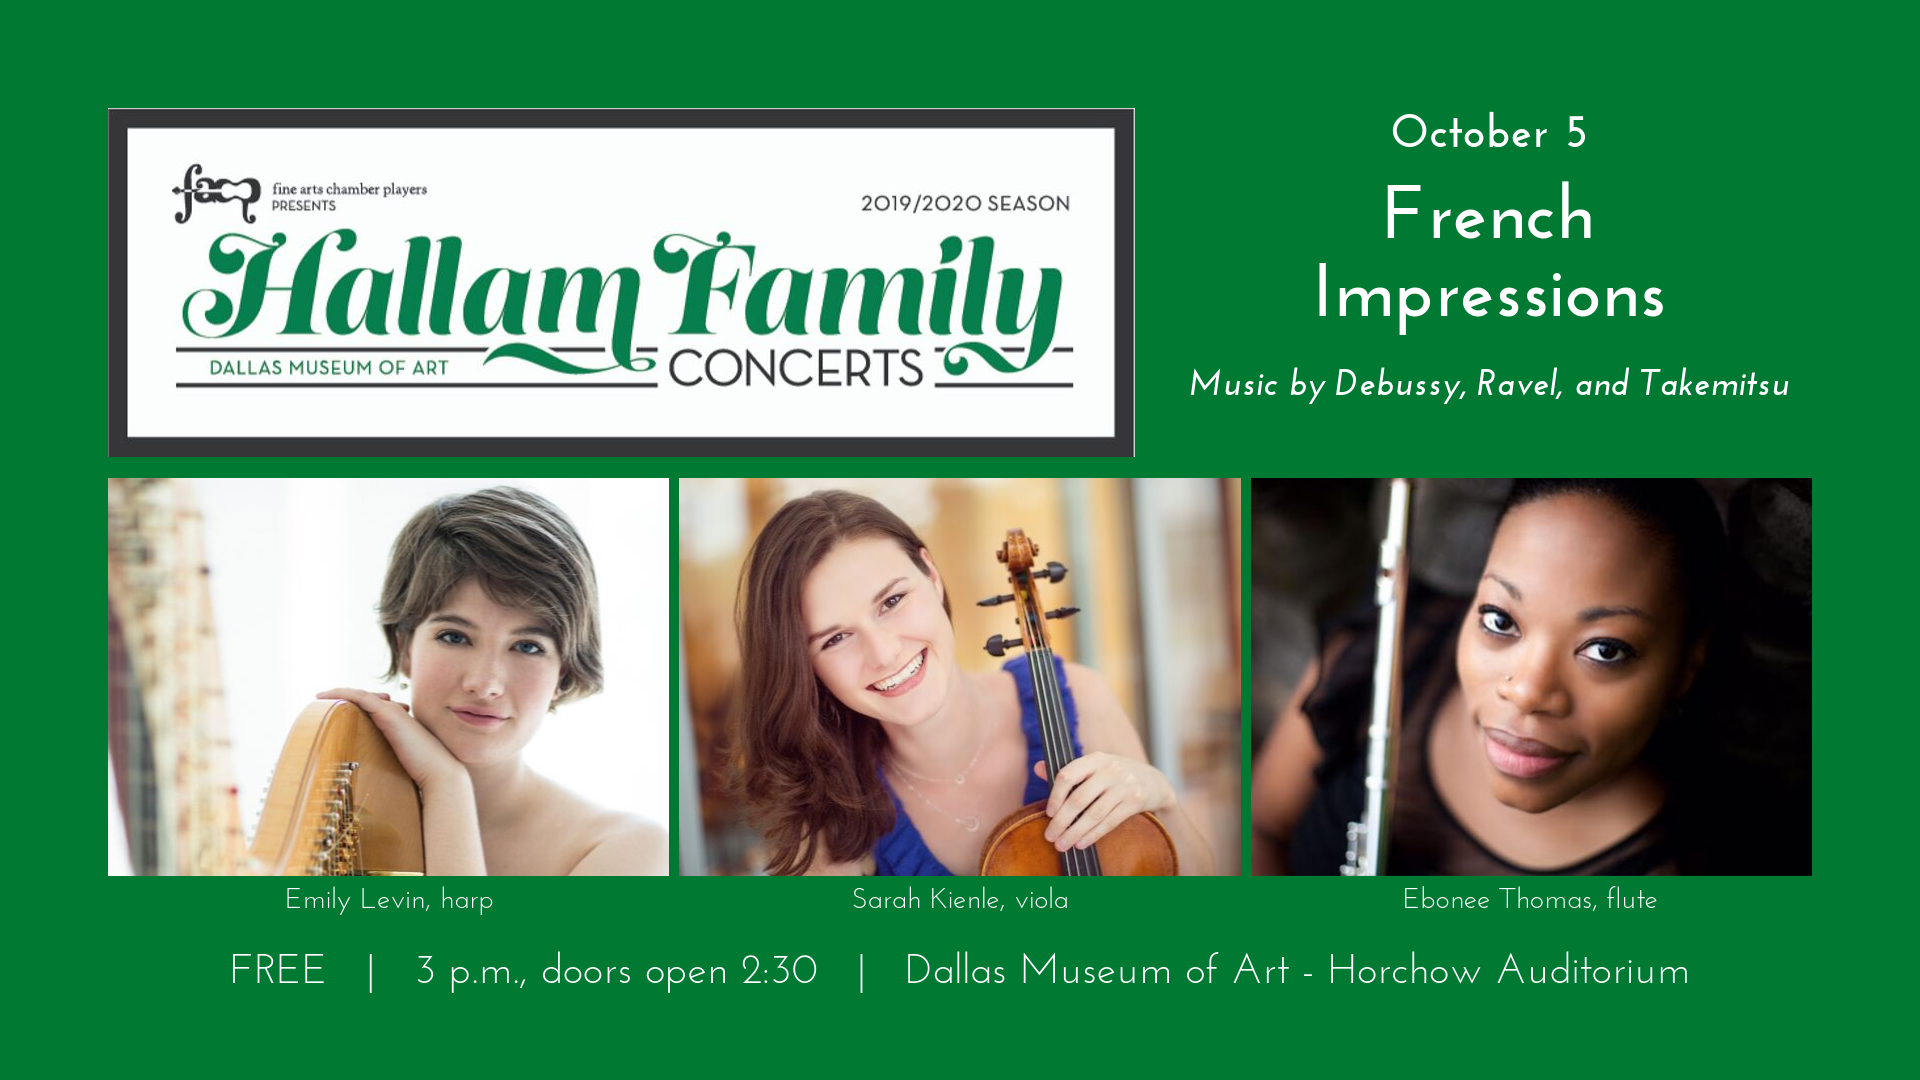 "Hallam Family Concerts: October 5, ""French Impressions"" Music by Ravel, Debussy, and Takemitsu; FREE; 3 p.m. doors open at 2:30; Horchow Auditorium - Dallas Museum of Art; photos of Emily Levin, harp; Sarah Kienle, viola; Ebonee Thomas, flute"